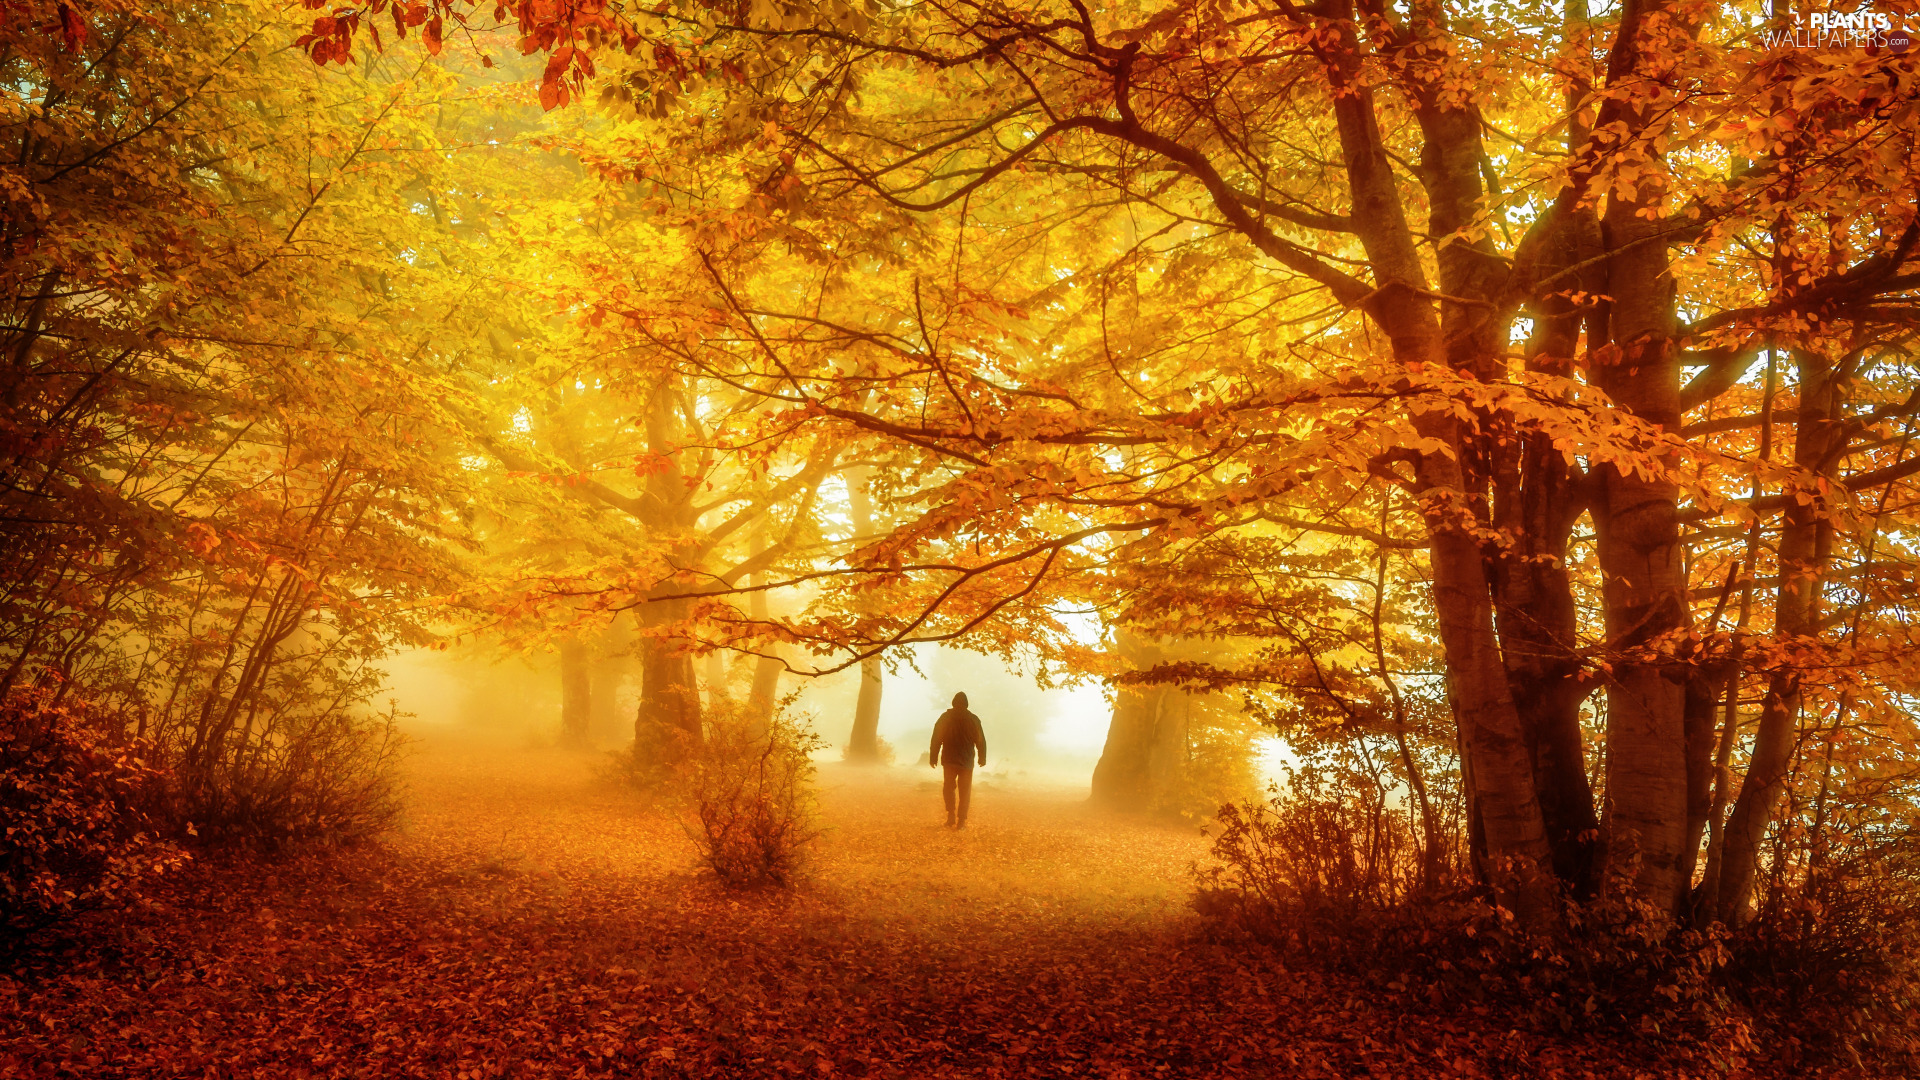 a man, autumn, viewes, forest, trees, Fog